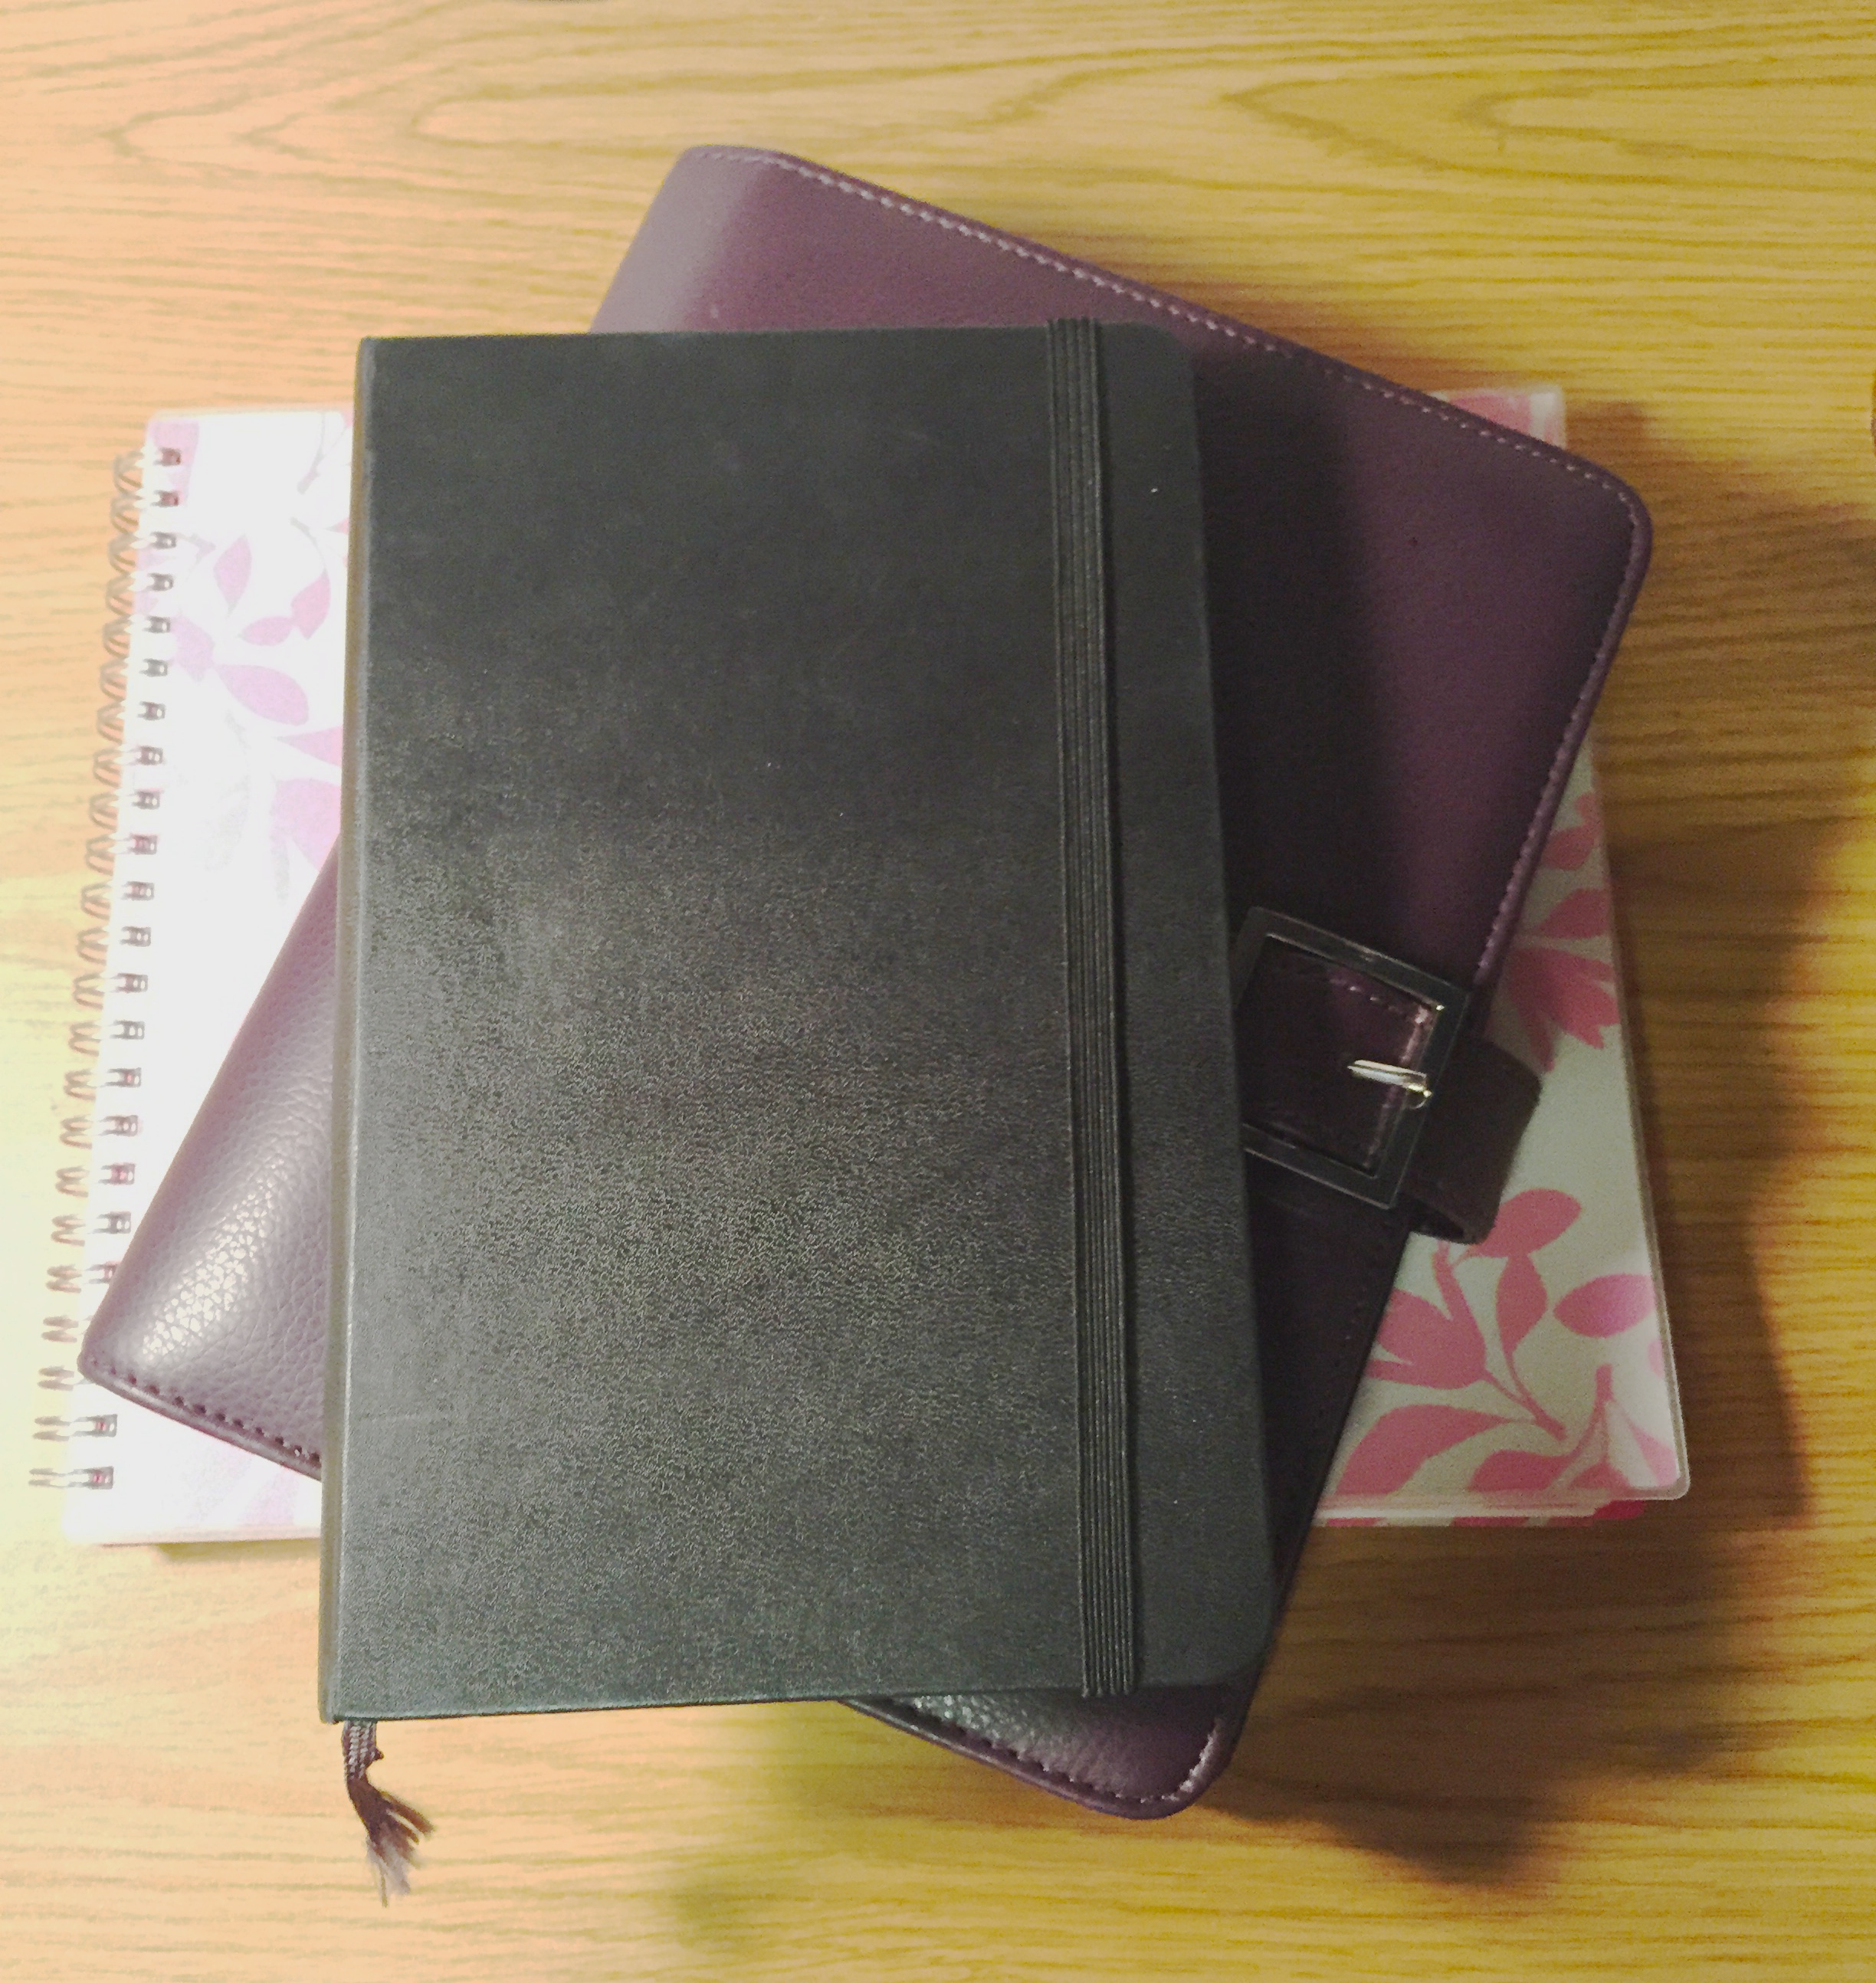 a moleskine, daytimer, and planner from target stacked on each other